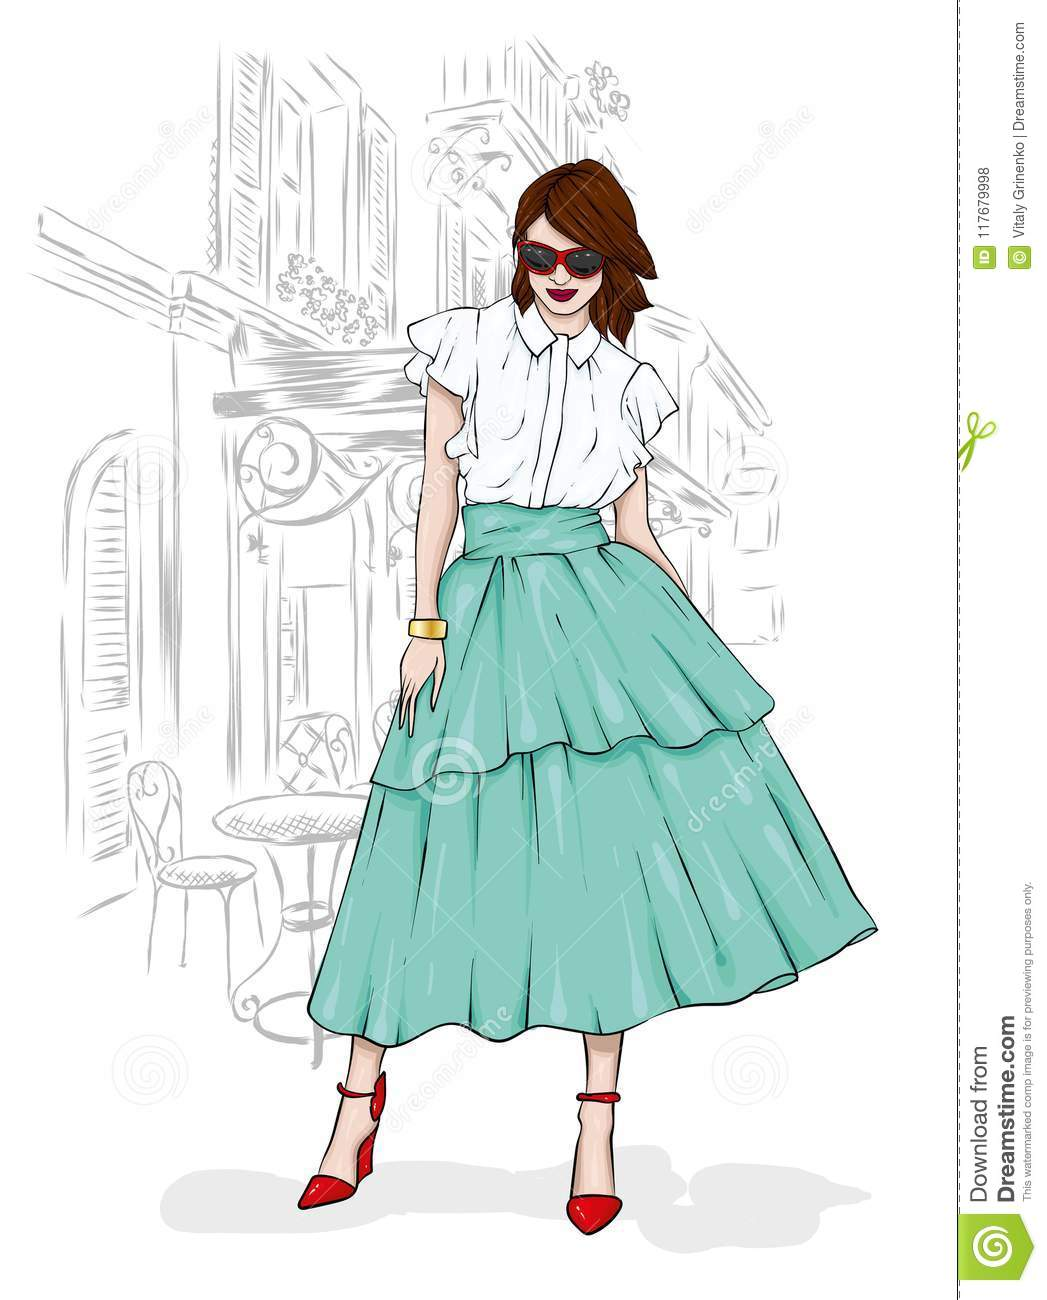 A Tall Slender Girl In A Midi Skirt A Blouse High Heeled Shoes And A Clutch Vector Illustration Clothing And Accessories Stock Vector Illustration Of Postcard People 117679998